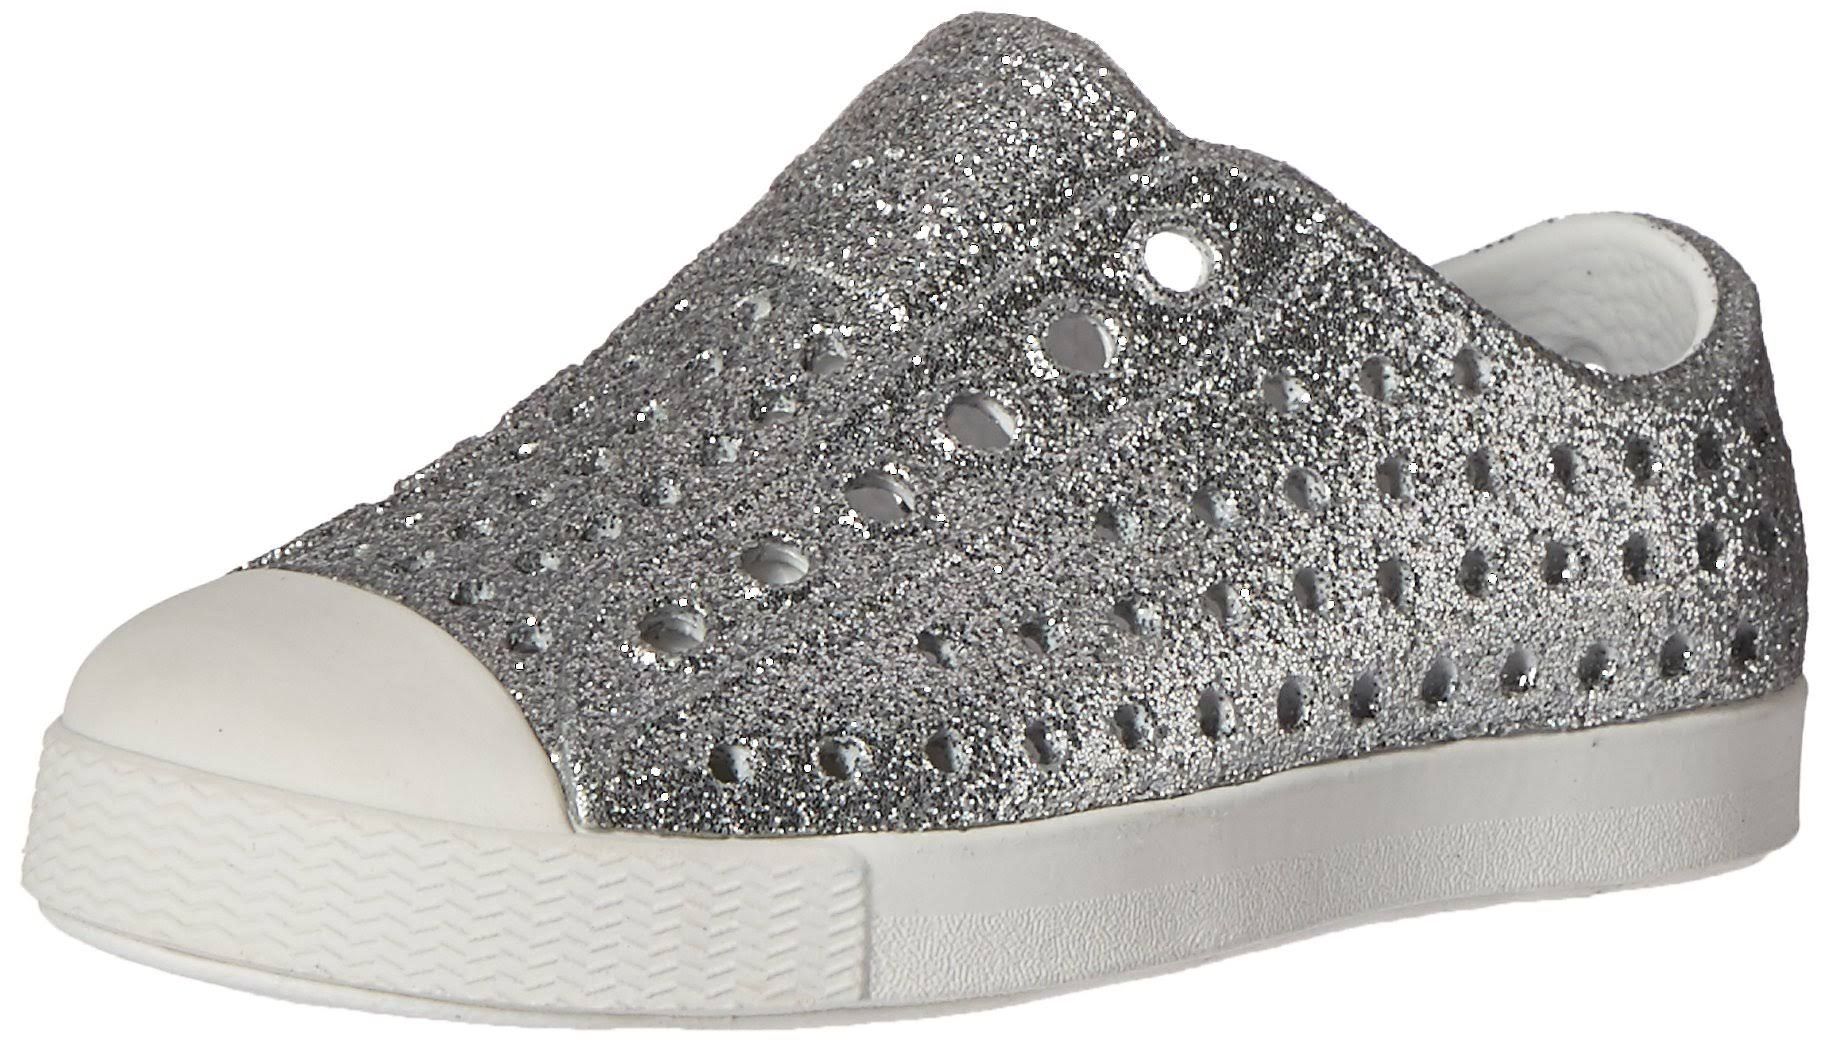 Native Shoes Toddler Jefferson Bling Shoes - Silver Bling and Shell White